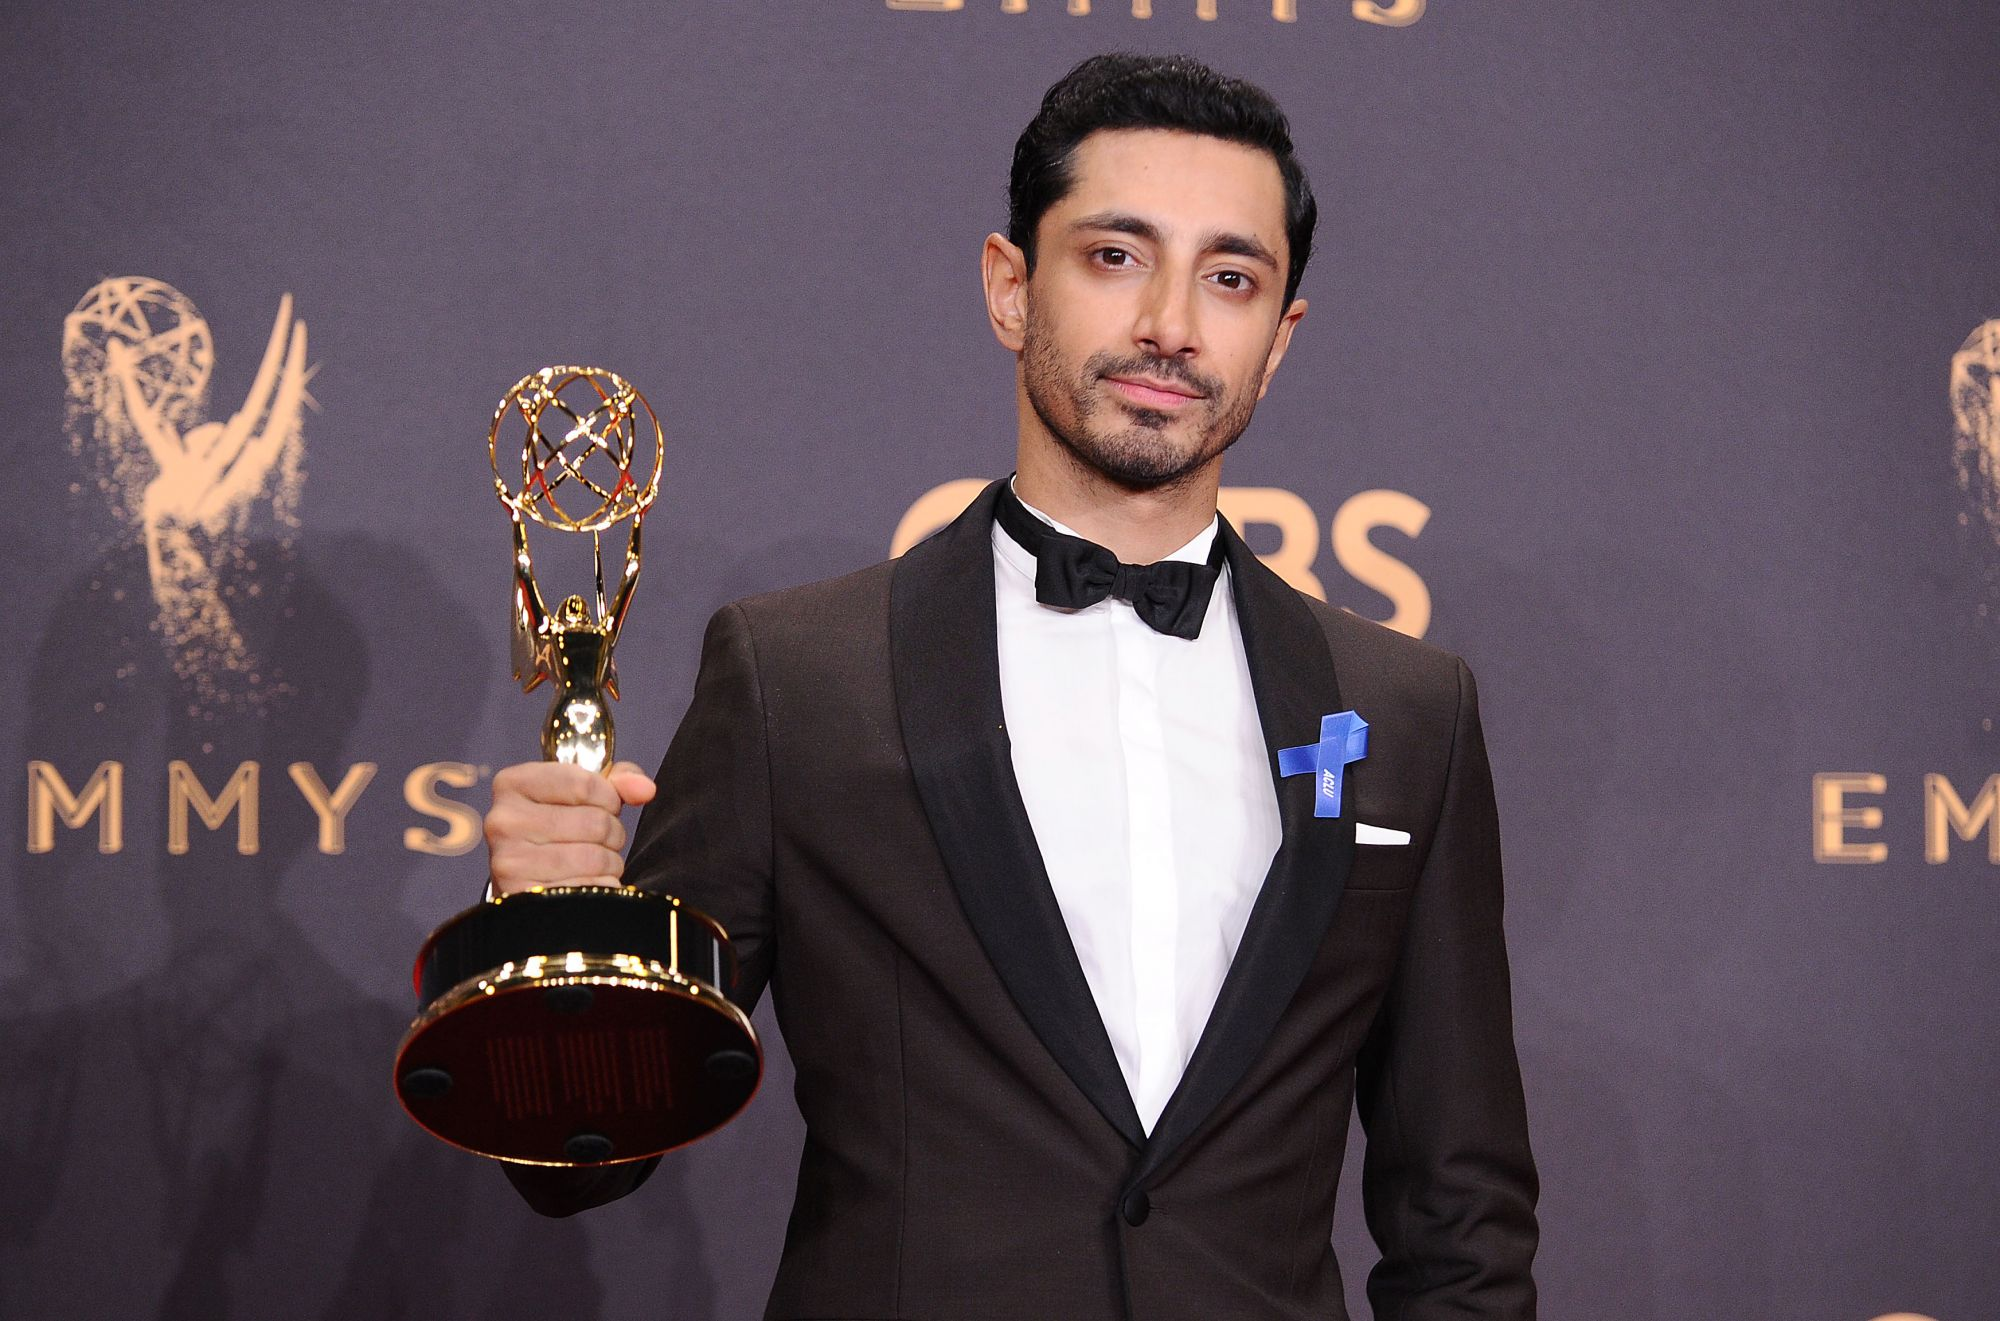 LOS ANGELES, CA - SEPTEMBER 17:  Actor Riz Ahmed poses in the press room at the 69th annual Primetime Emmy Awards at Microsoft Theater on September 17, 2017 in Los Angeles, California.  (Photo by Jason LaVeris/FilmMagic)